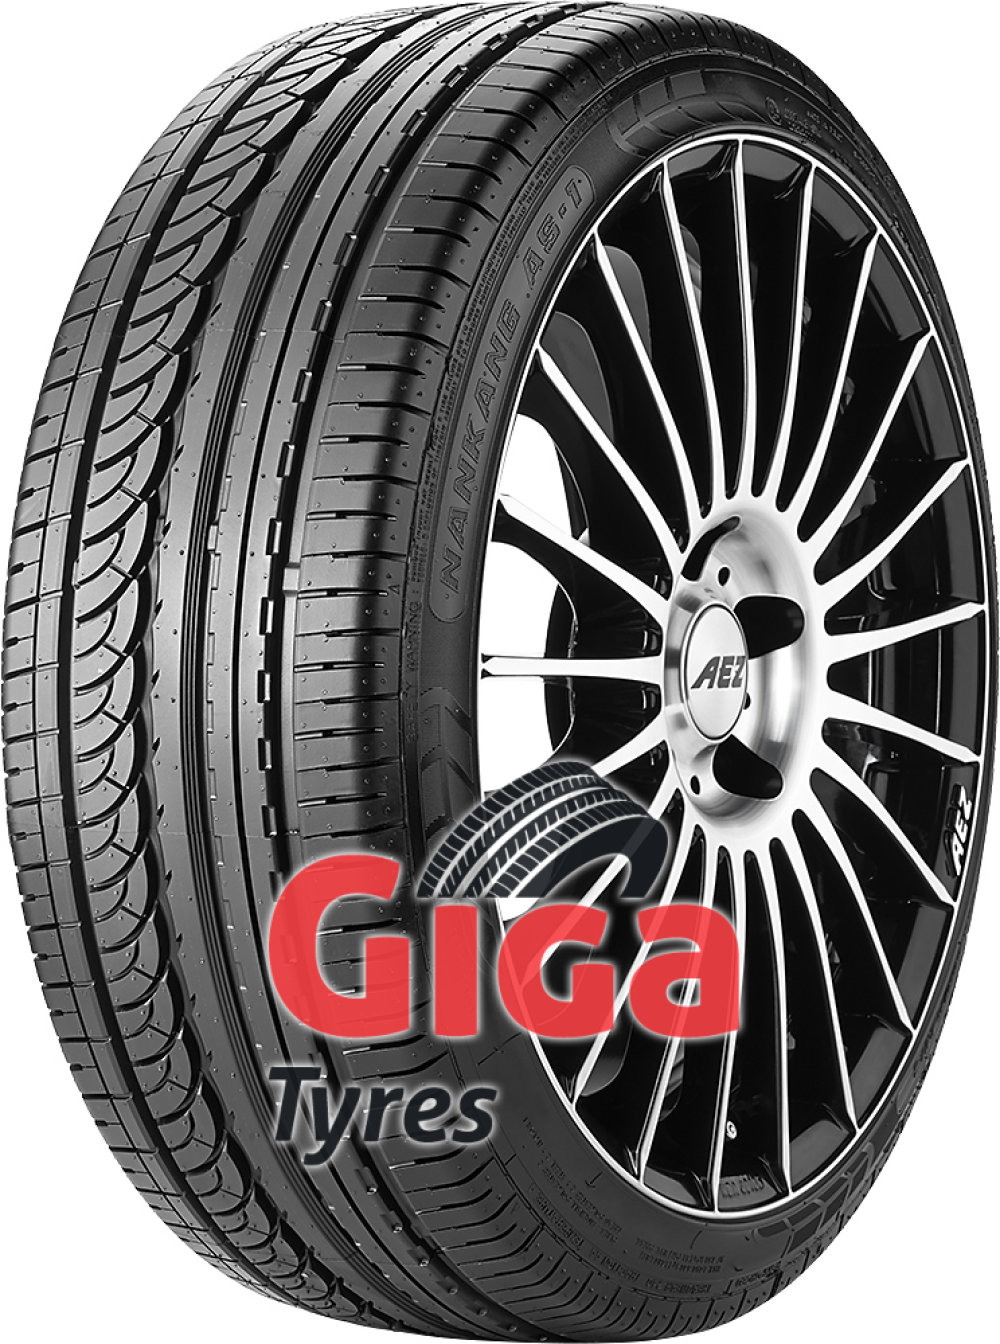 Nankang AS-1 ( 165/45 R17 75H XL with rim protection (MFS) )